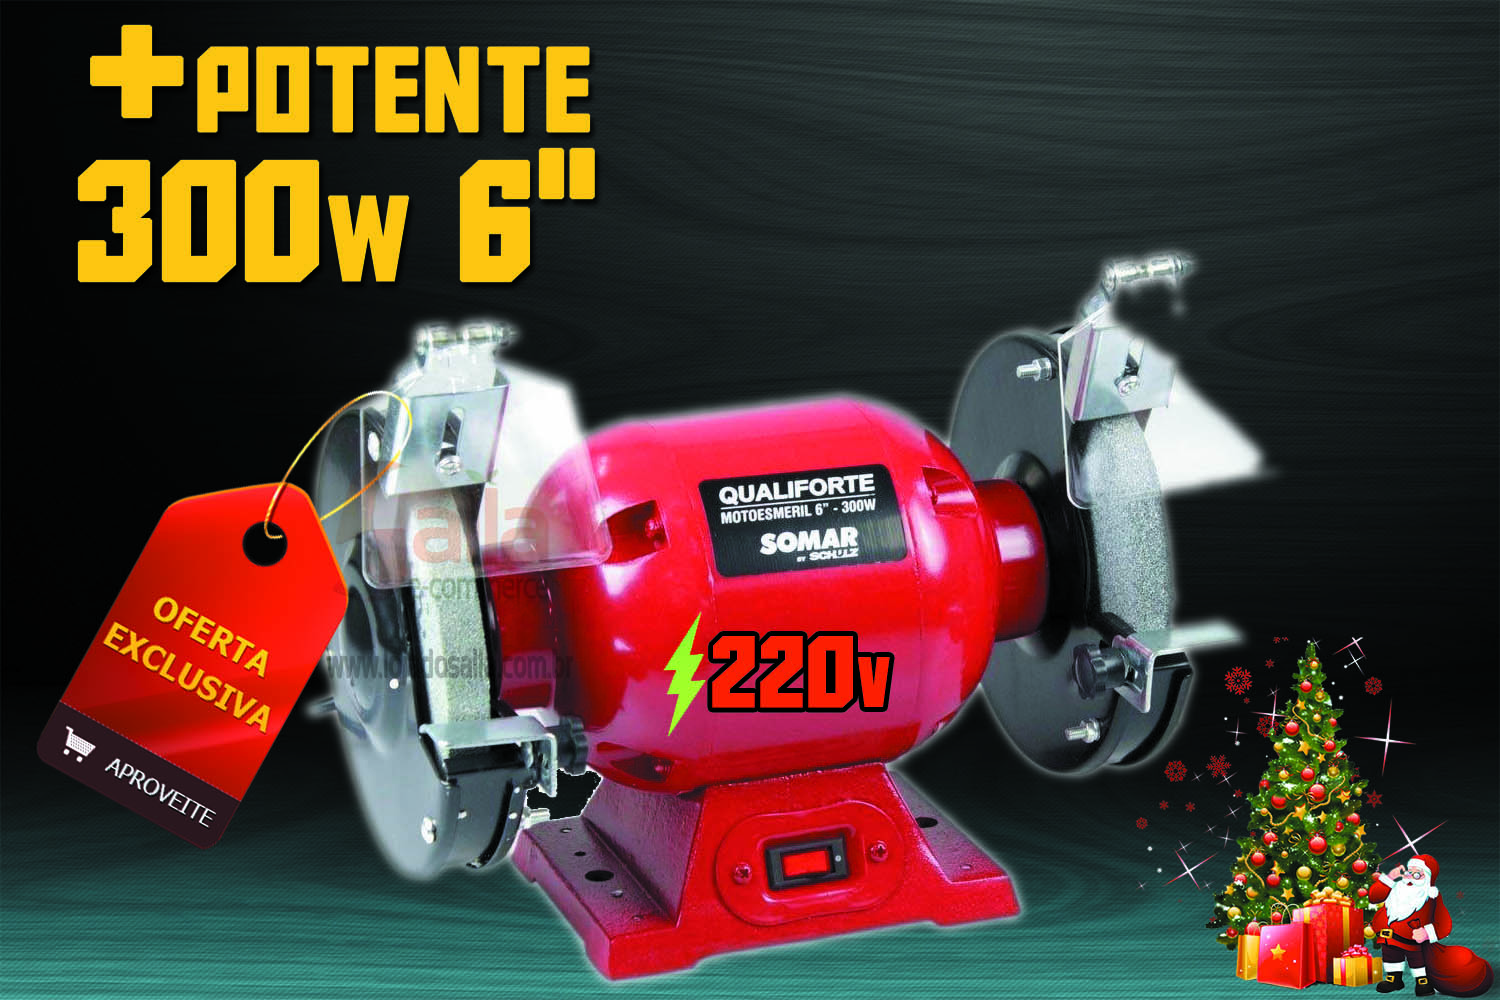 Moto Esmeril de Bancada 300w Motor Potente Qualiforte Ms6 220v Somar By Schulz